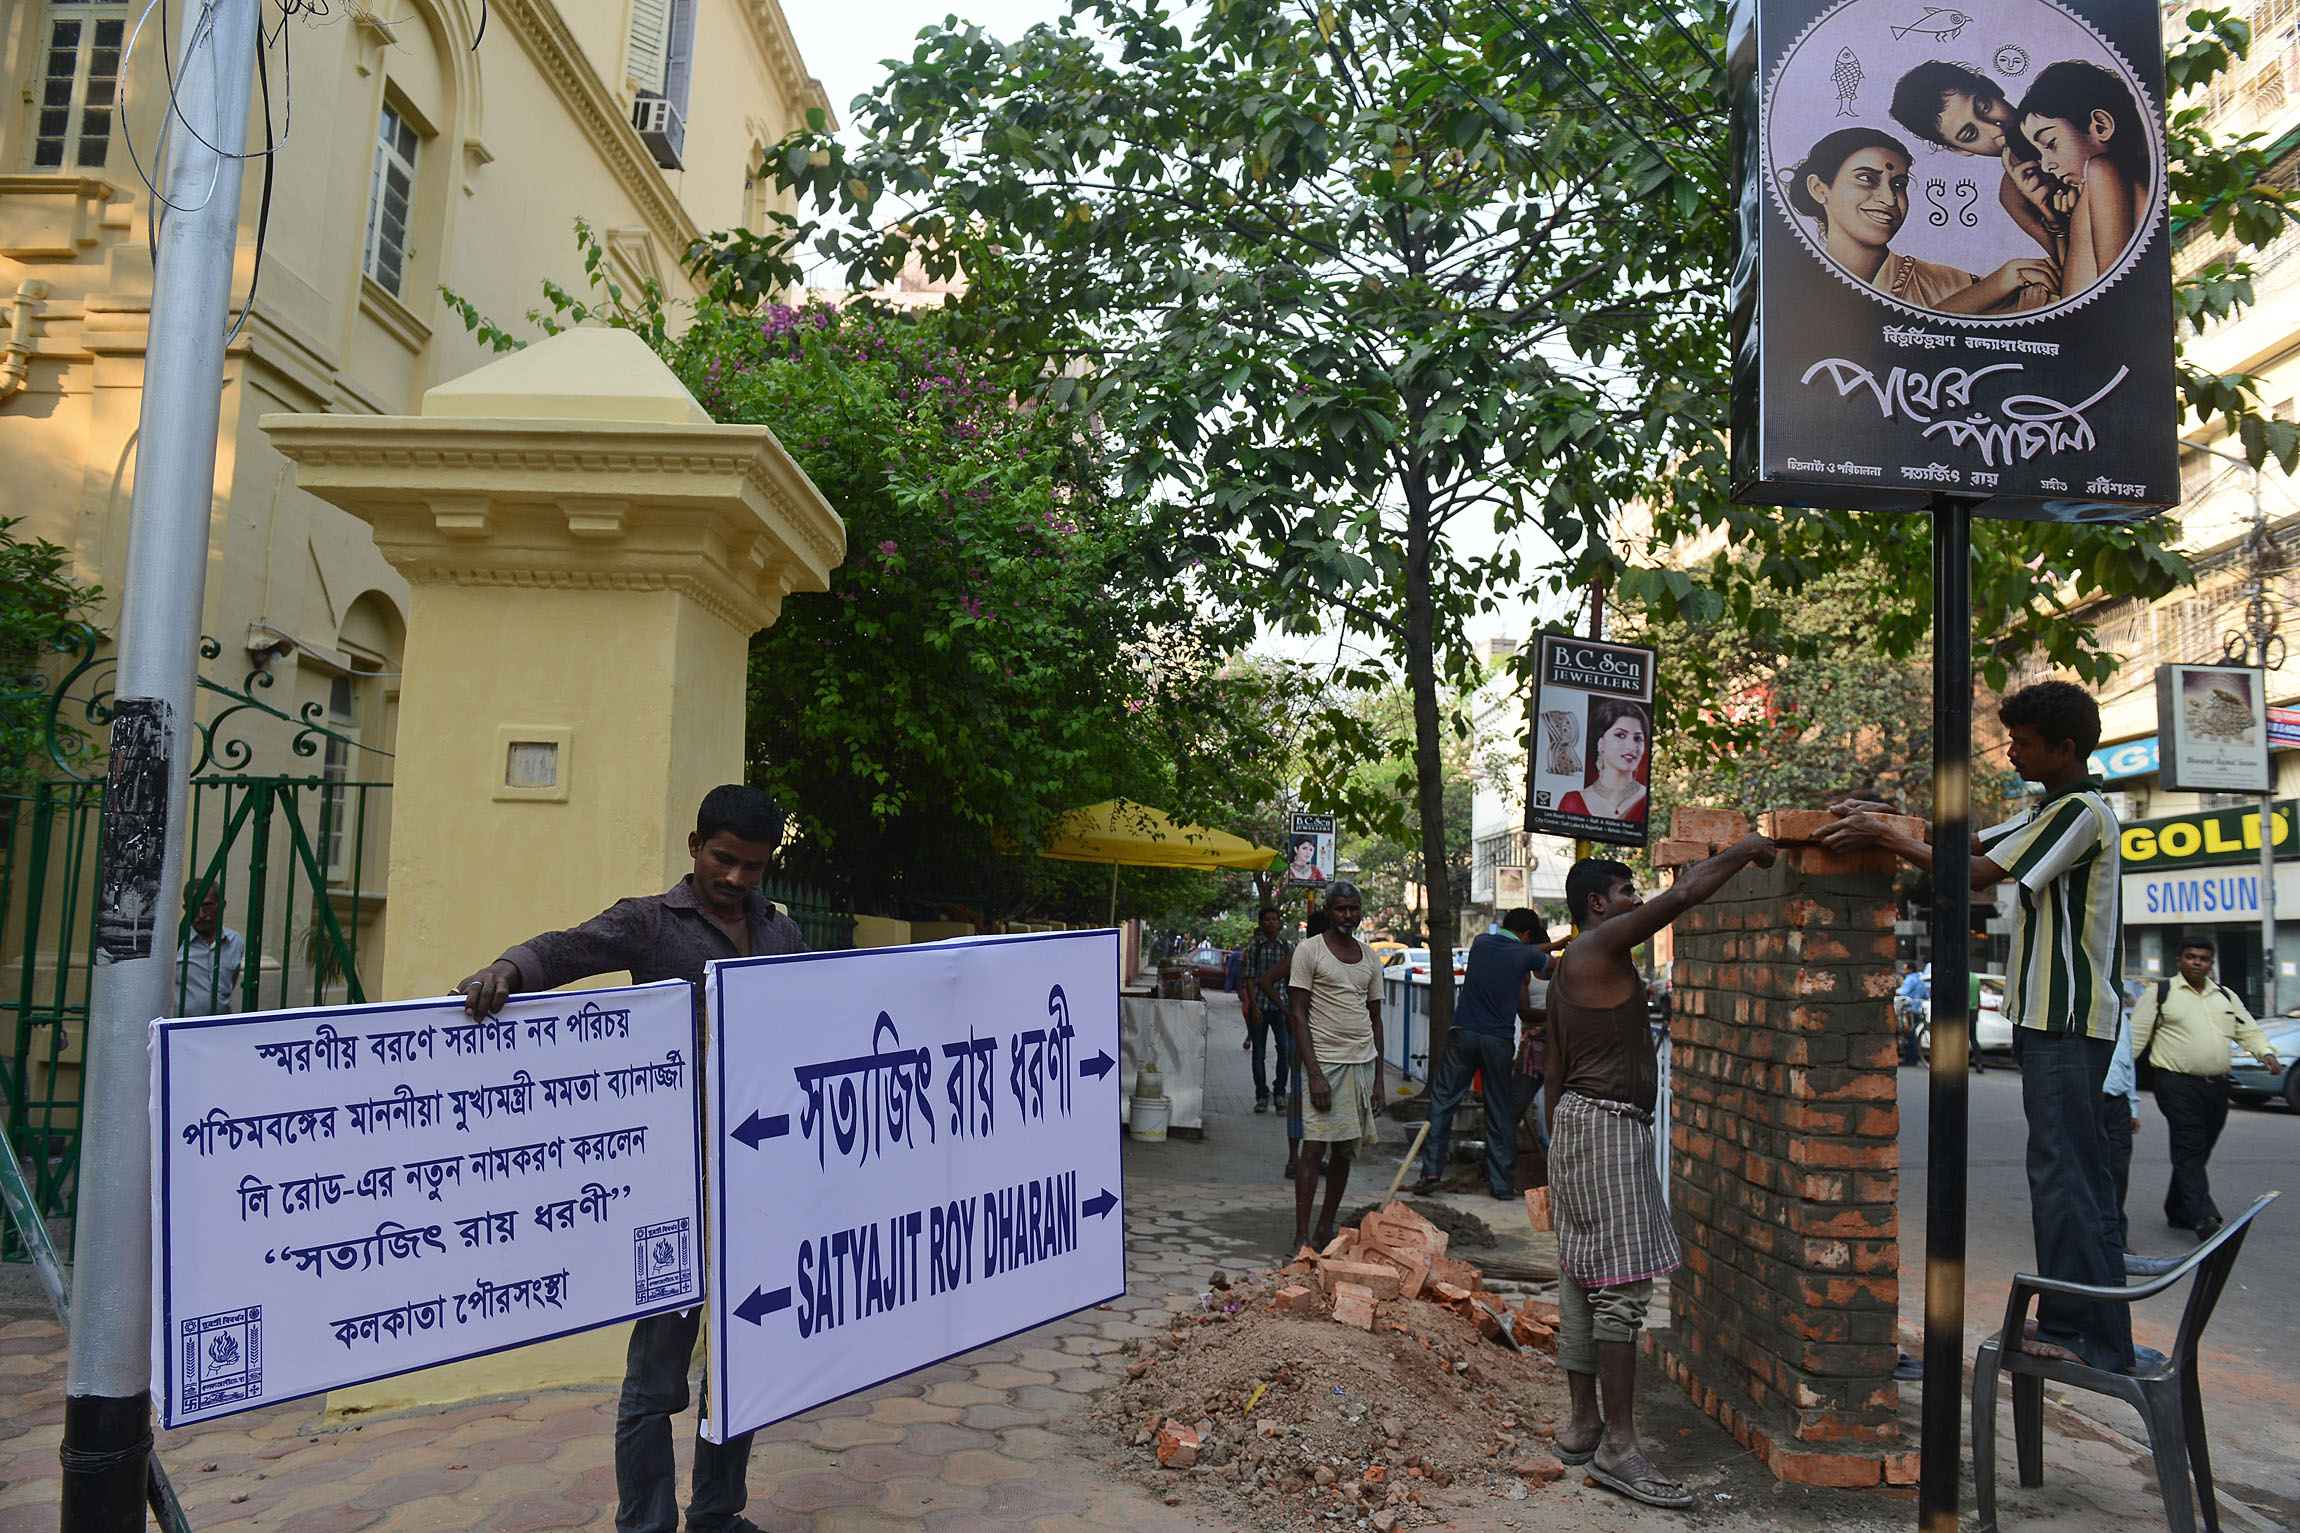 Lee Road was renamed Satyajit Ray Dharani by Mamata Banerjee